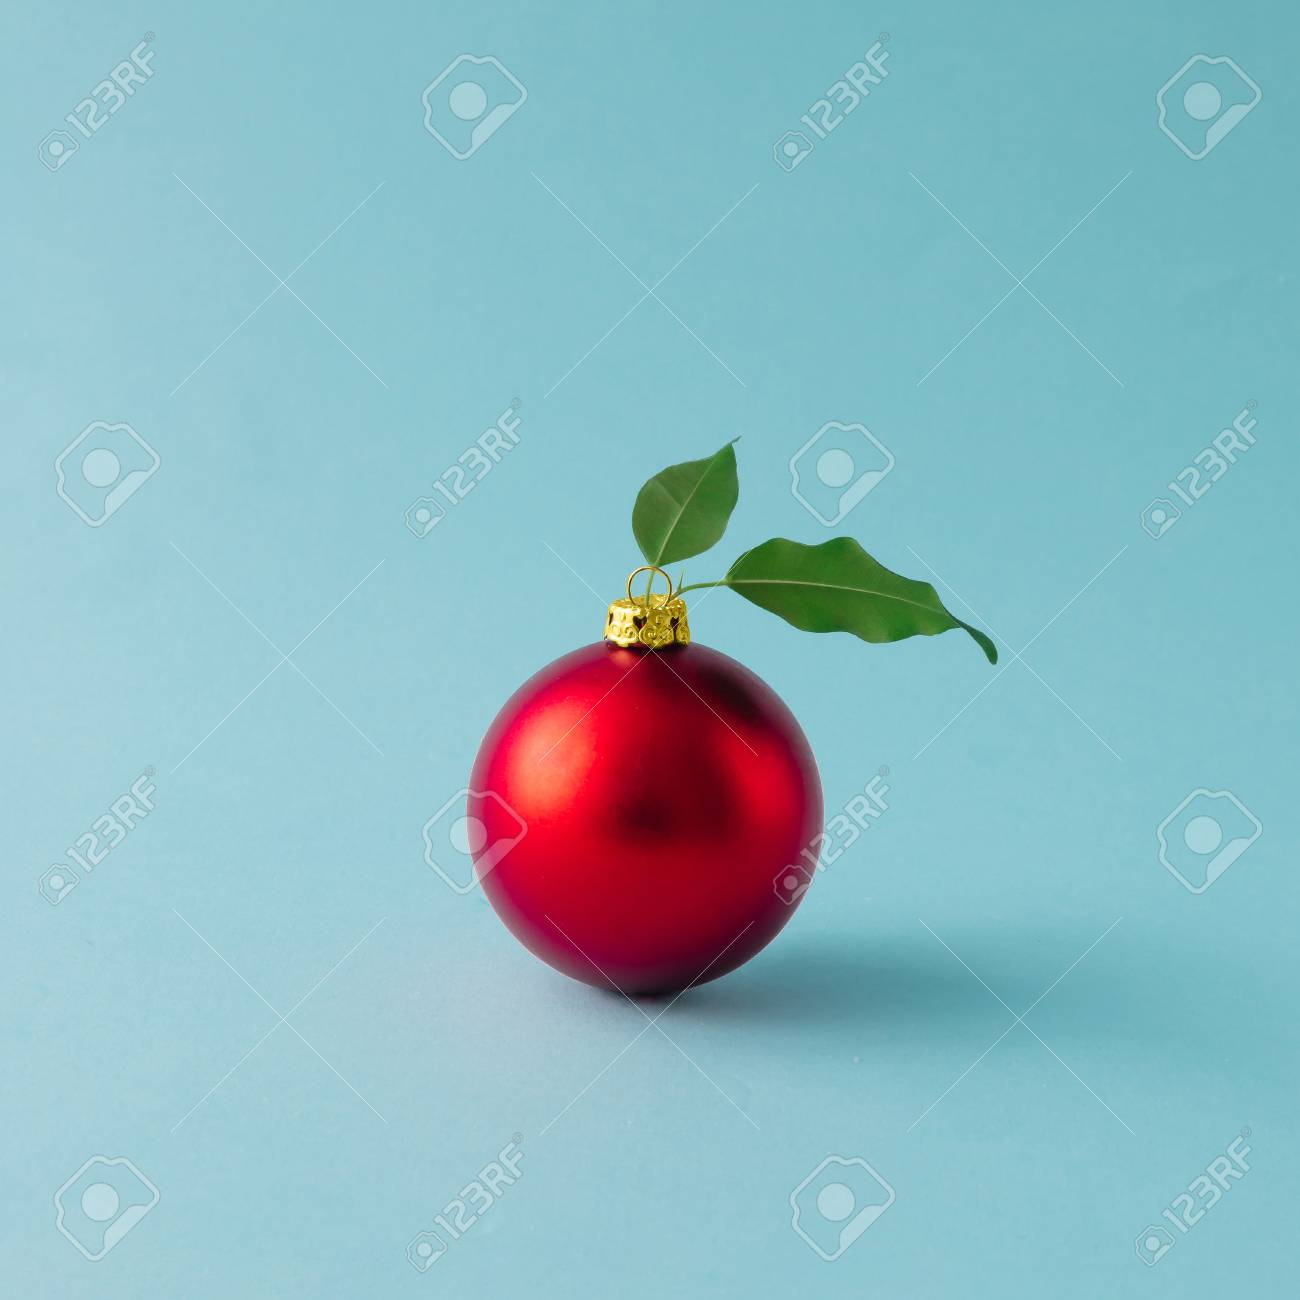 Apple made of red Christmas bauble and leaves on blue background. Christmas food concept. - 90238203